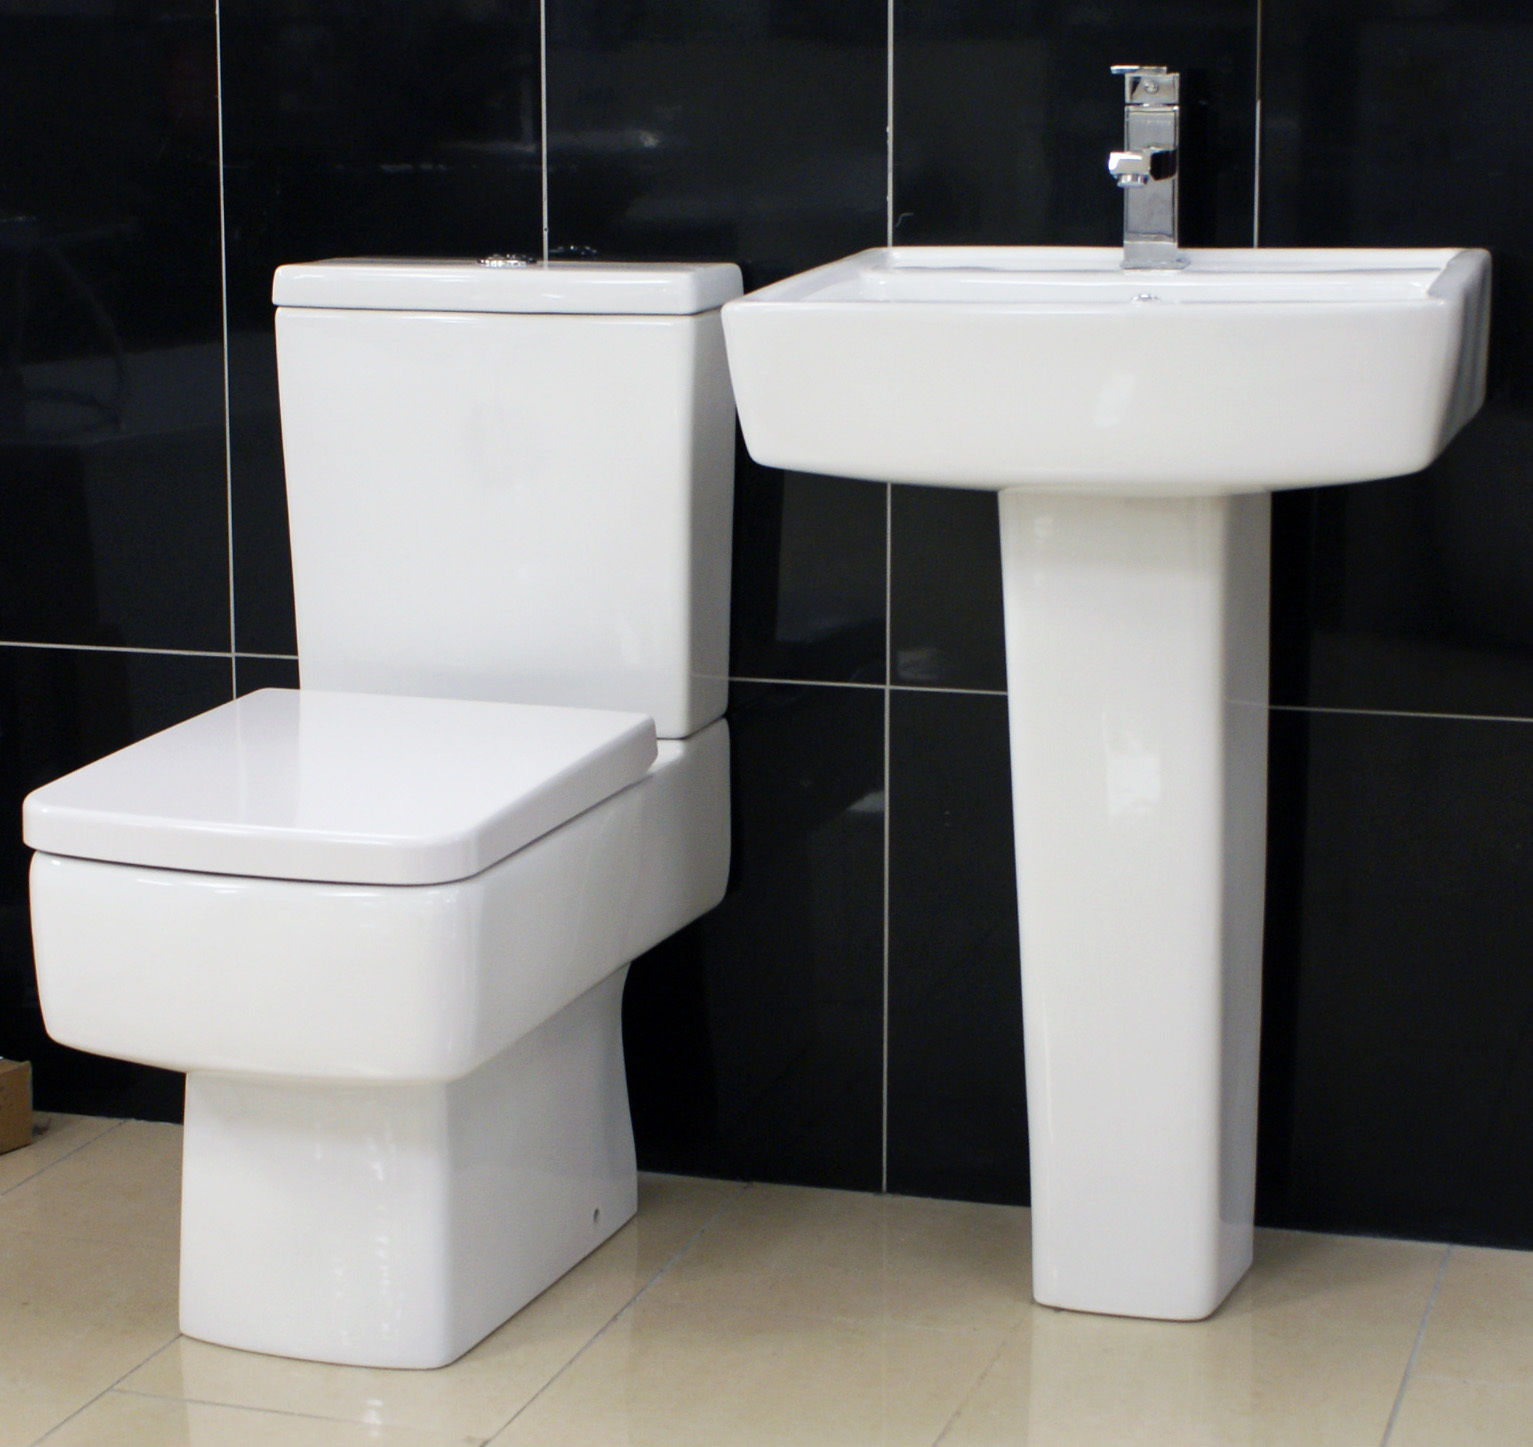 Designer Bathroom Suite Basin Toilet Set Soft Close Seat Lifetime Guarantee 321469603293 3 Tewp